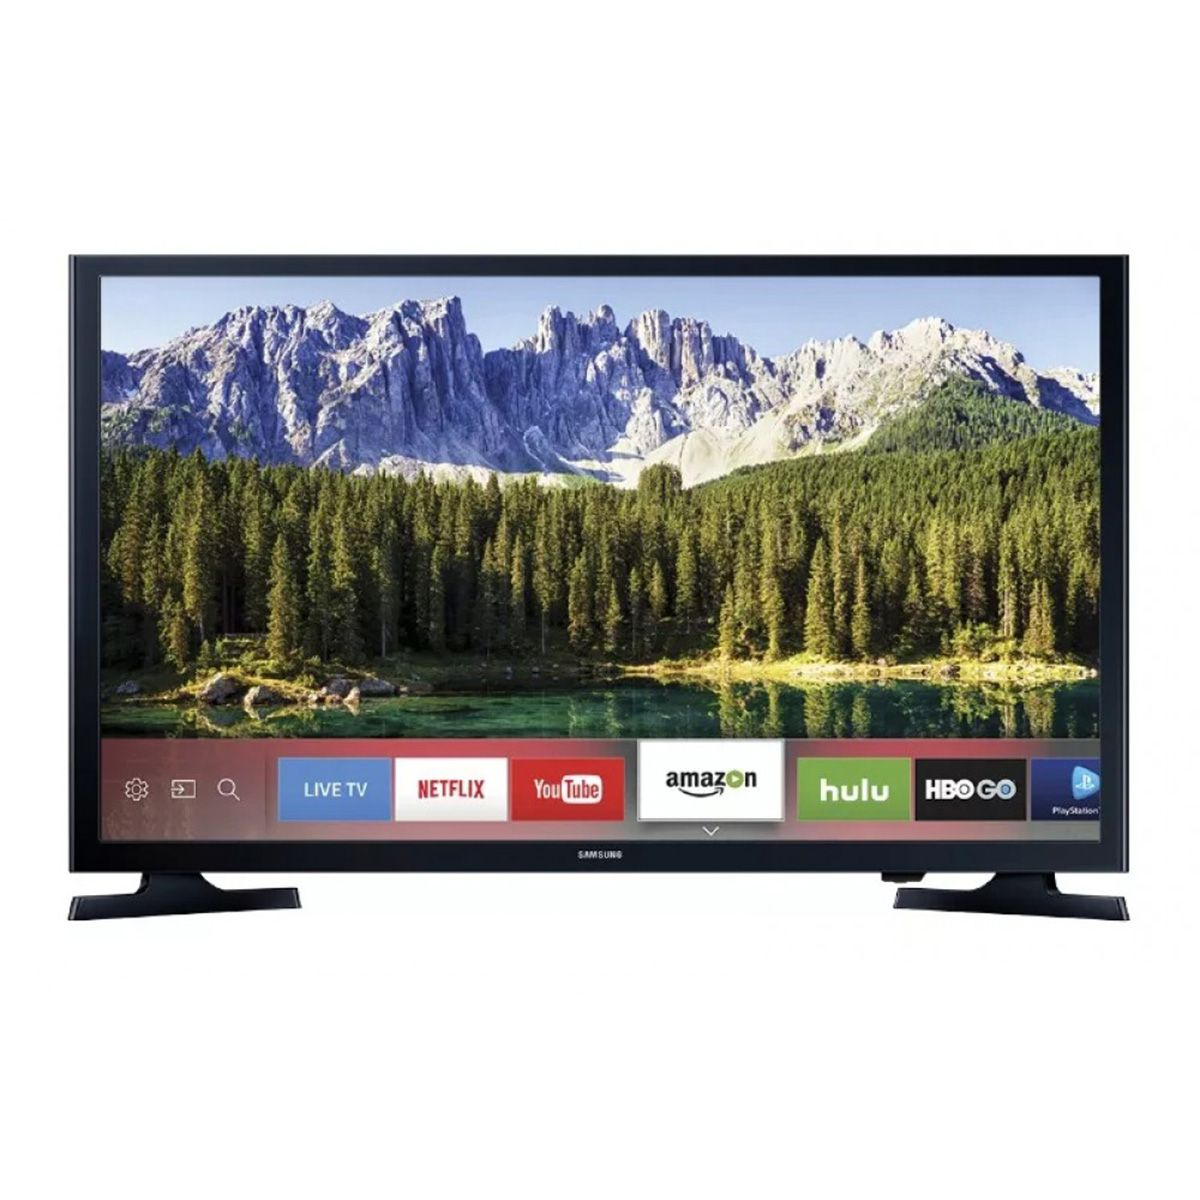 Hitachi Tv Alpha led 49″ 1080P 49C32